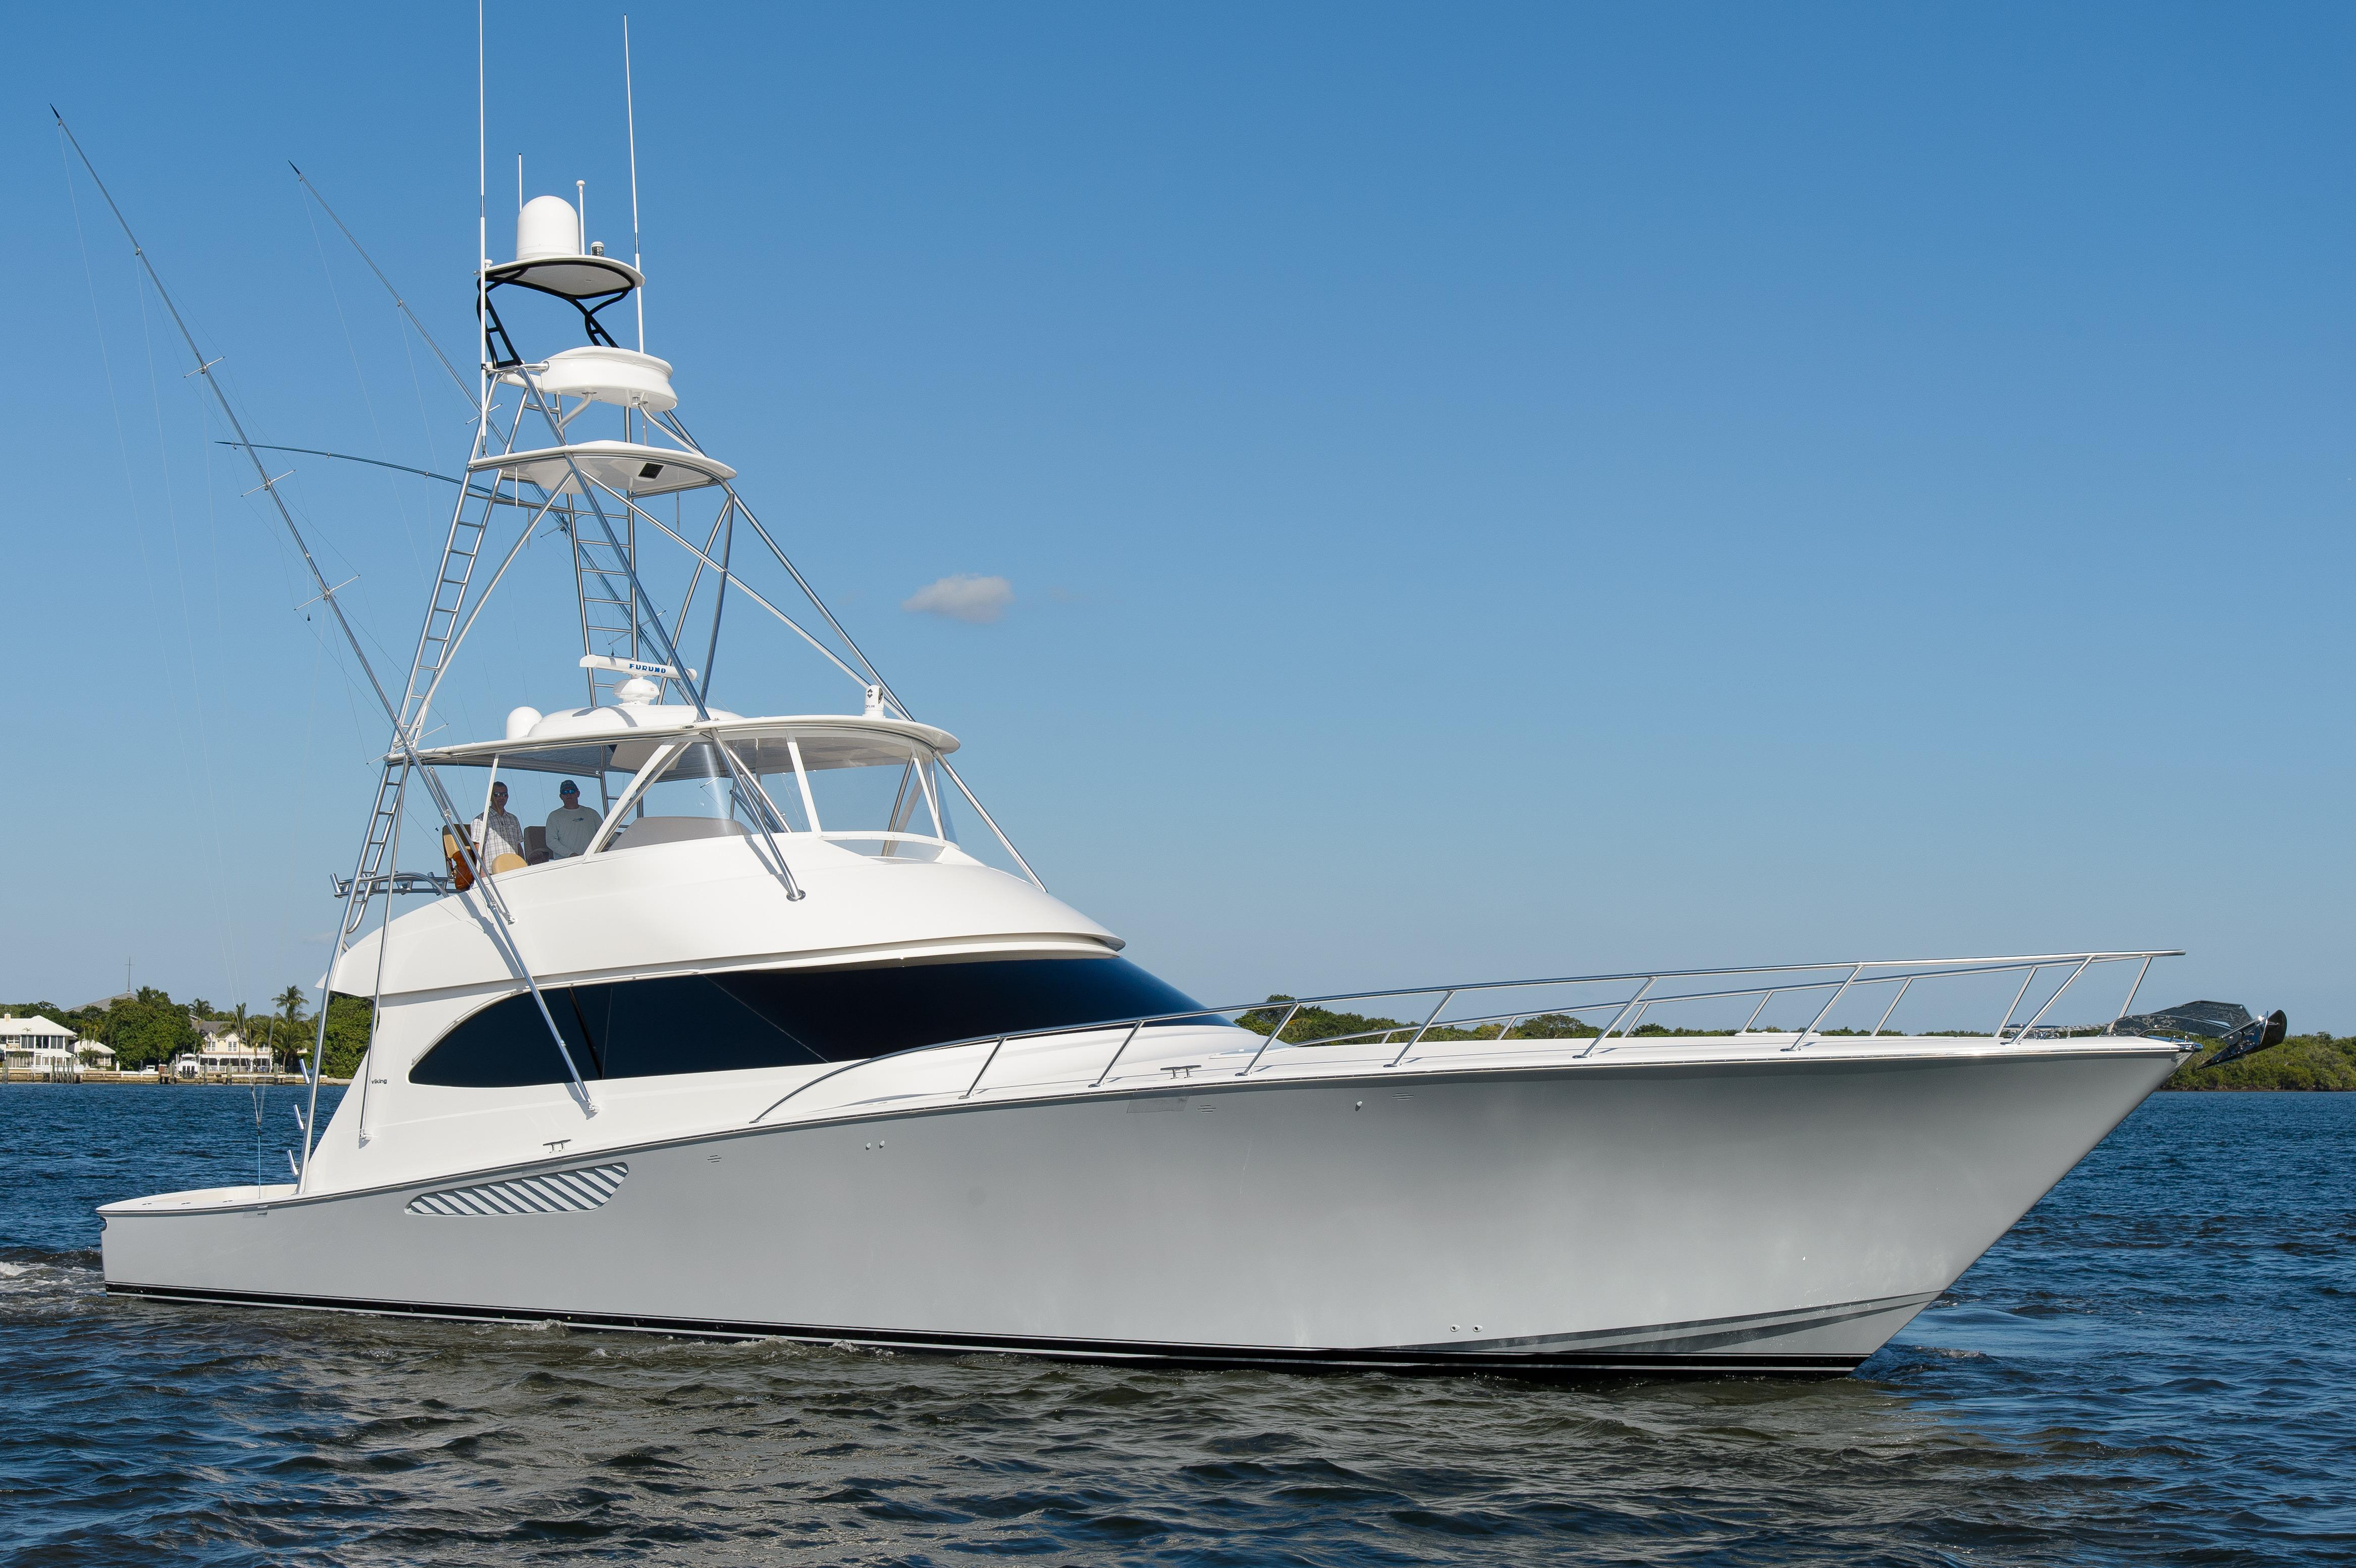 Used viking yachts for sale from 60 to 70 feet for 60 viking motor yacht for sale